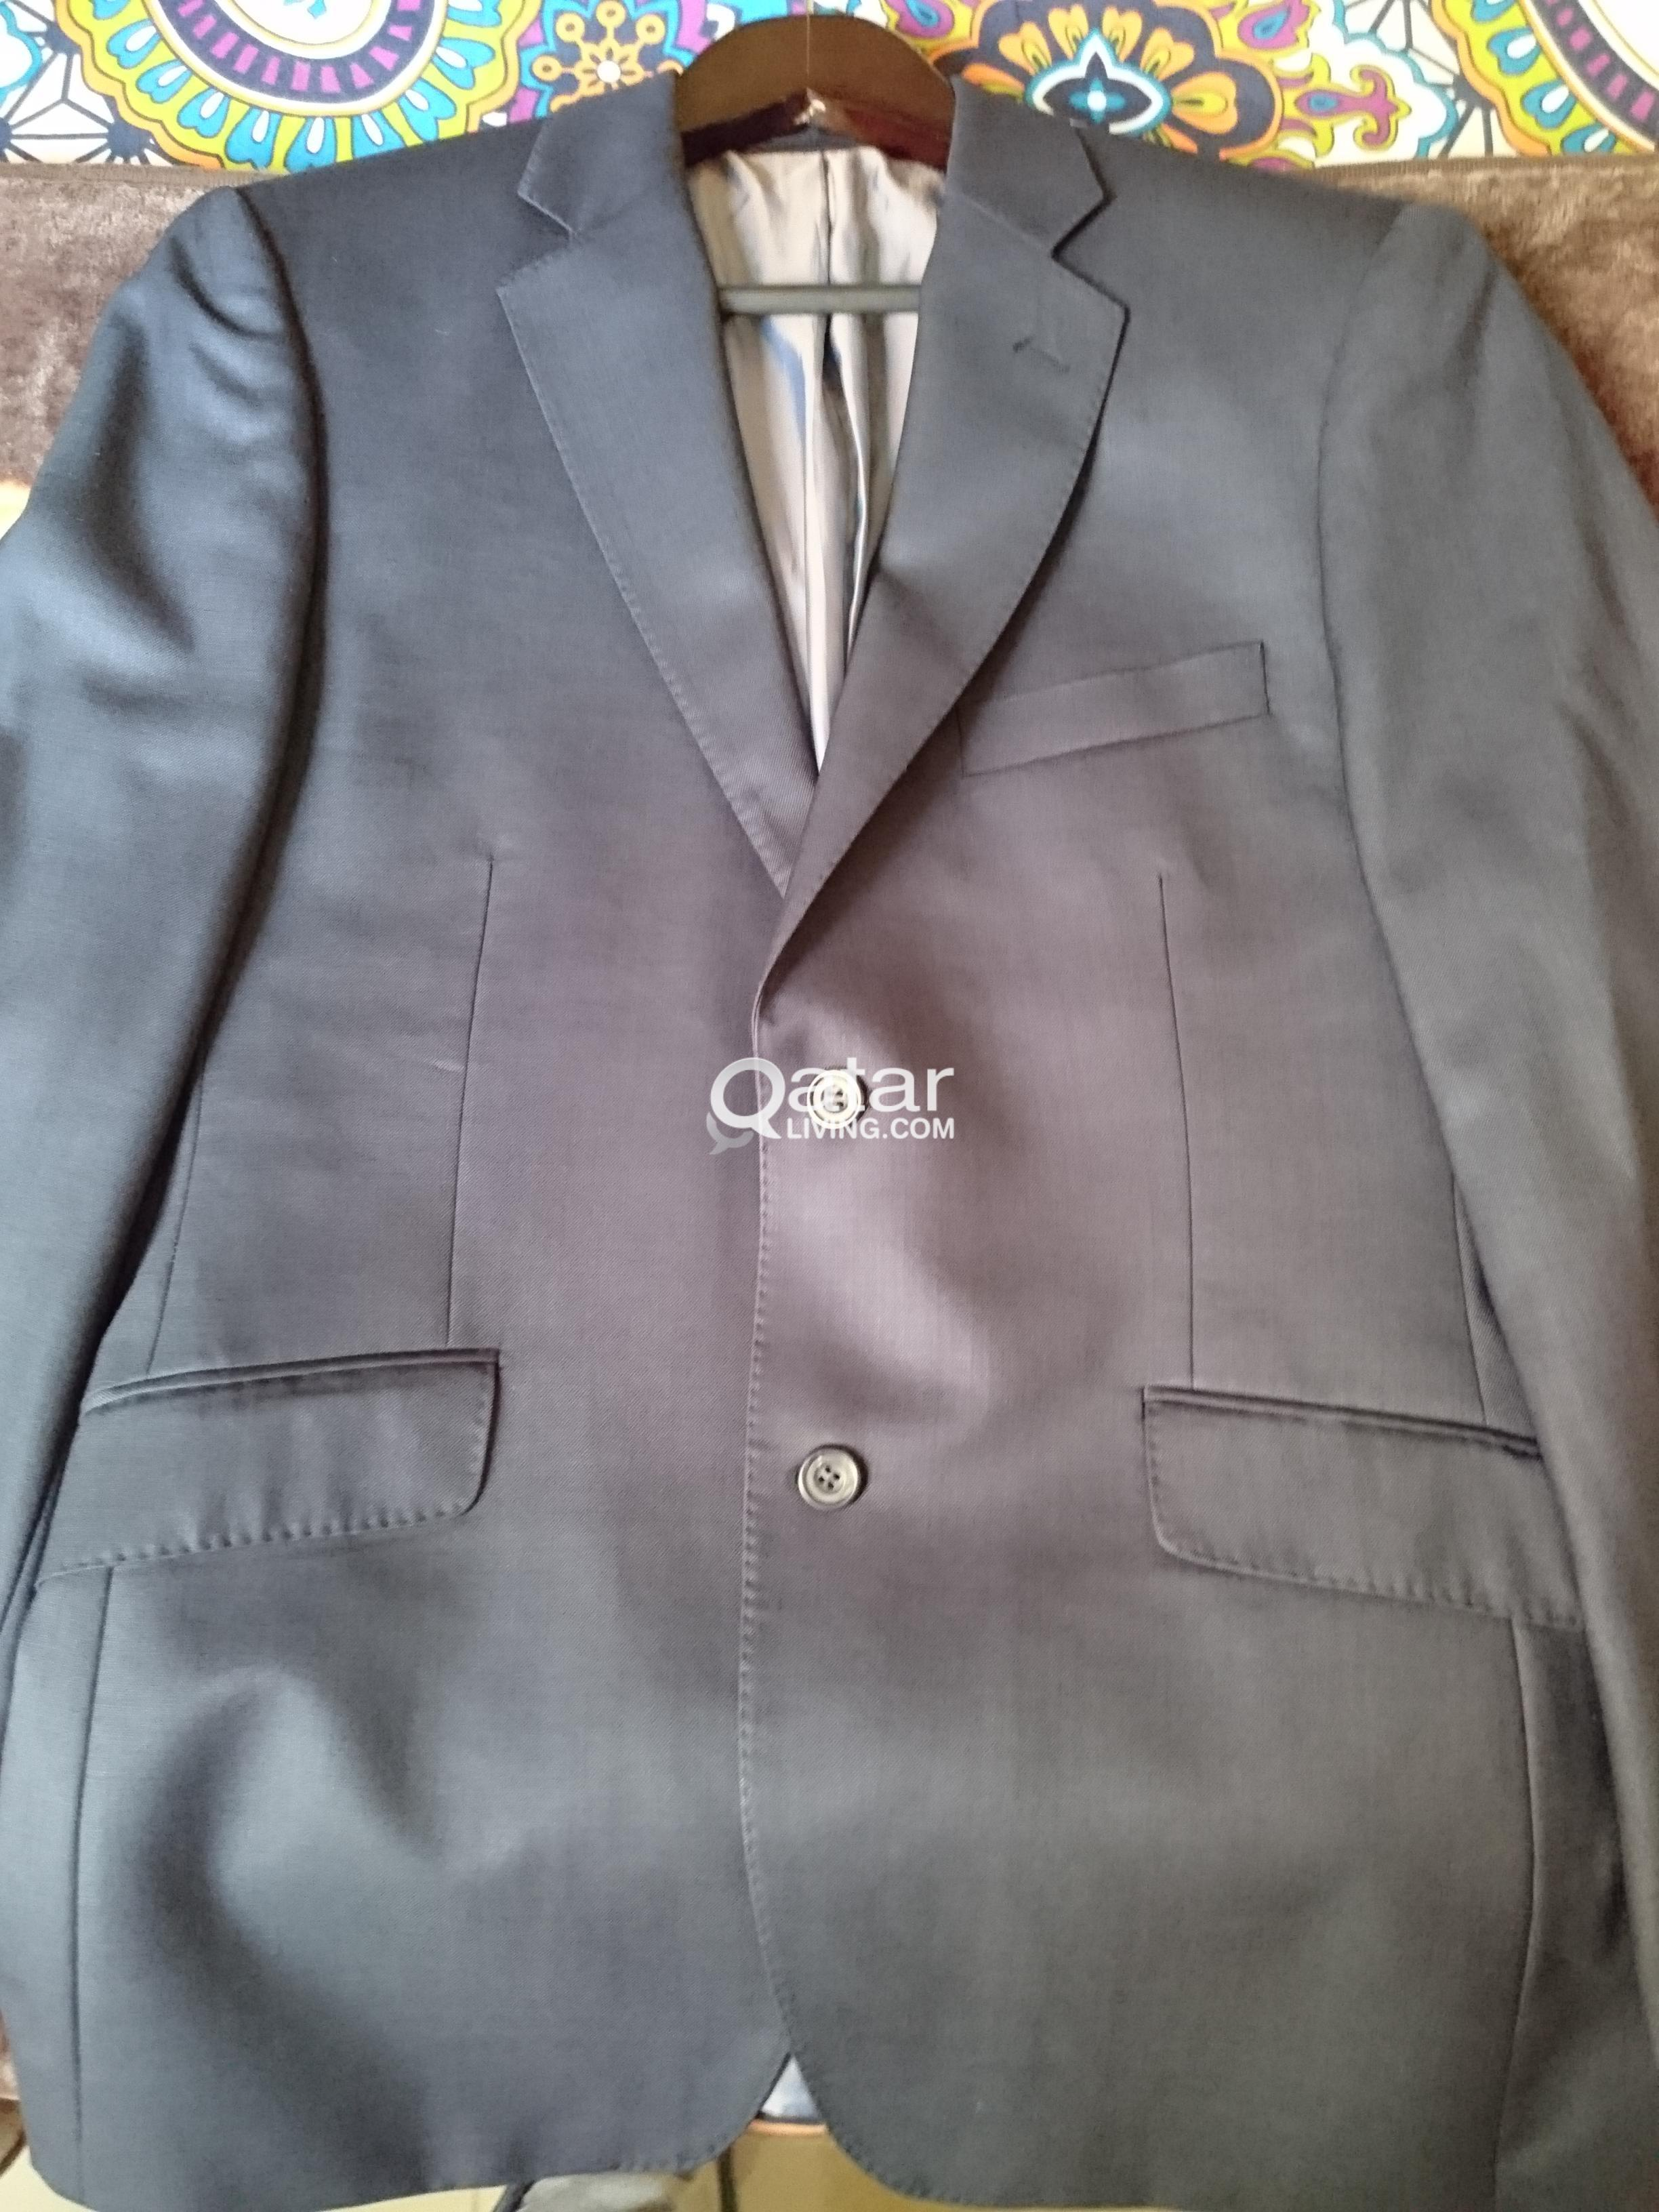 Austin Reed Uk Suit Jacket Only Size 40 Short Waist 32 36 Inches As New Qatar Living